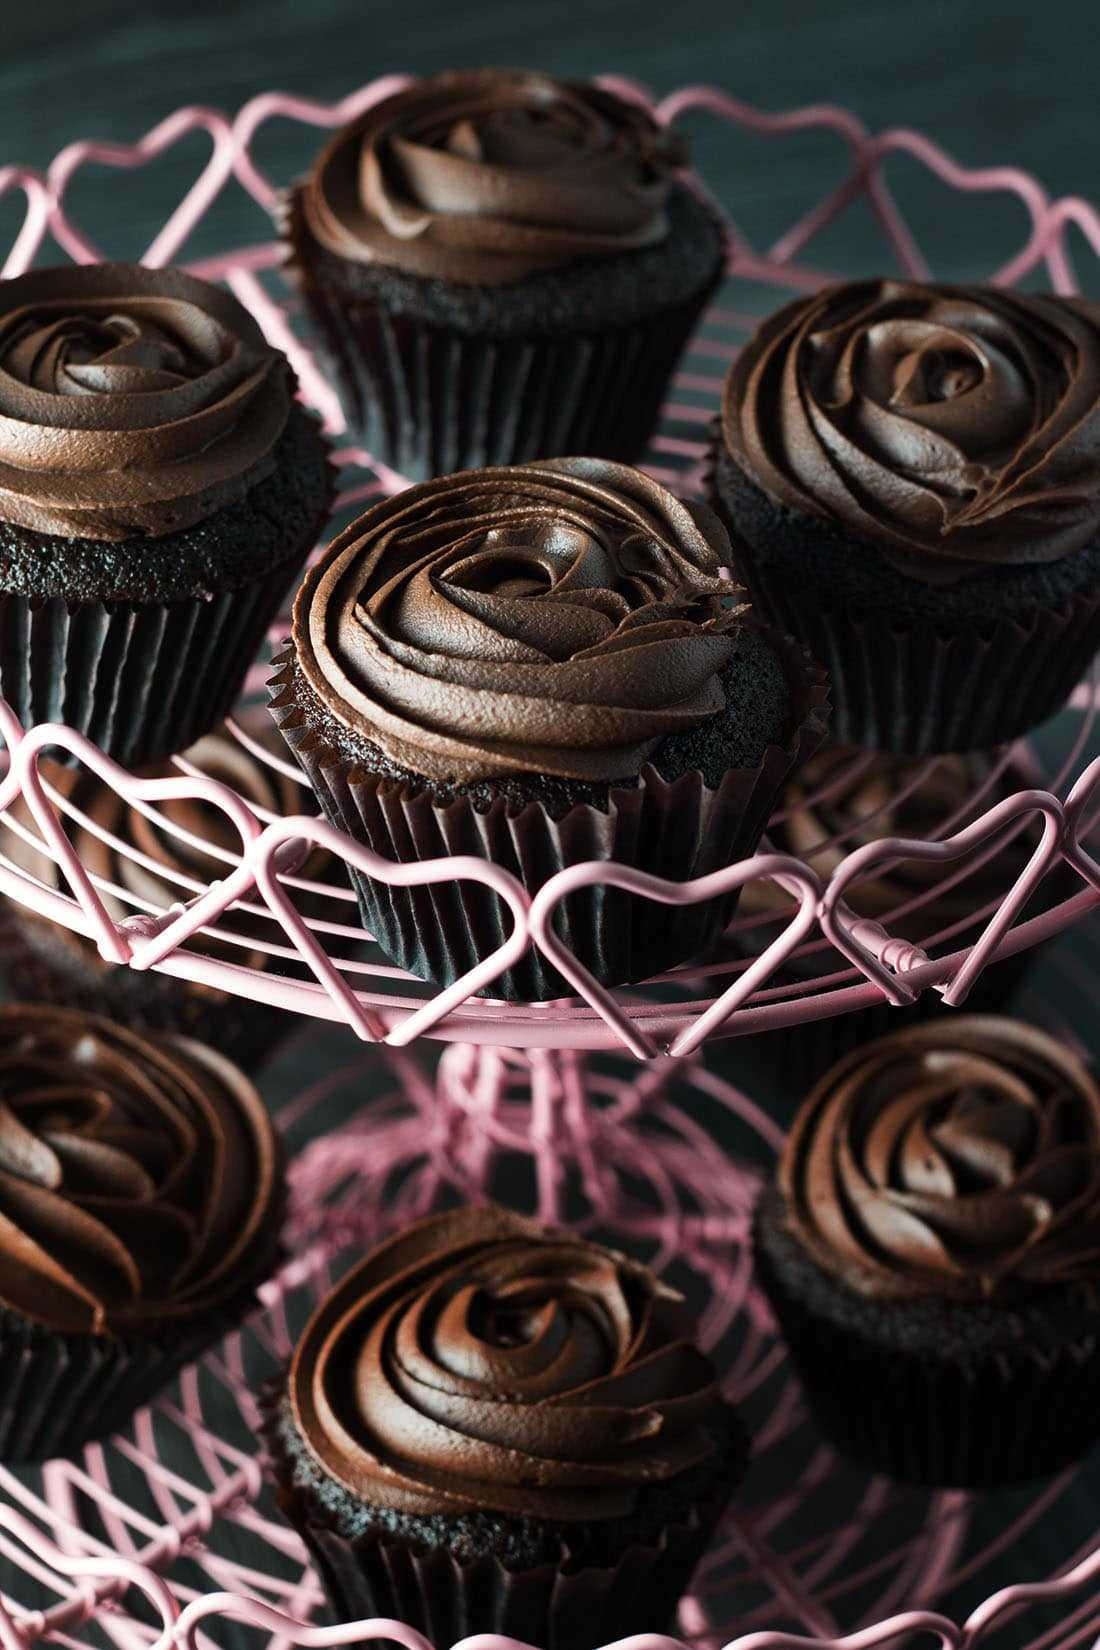 A selection of devils food cupcakes with chocolate icing in a rose swirl on a pink cupcake stand with heart design